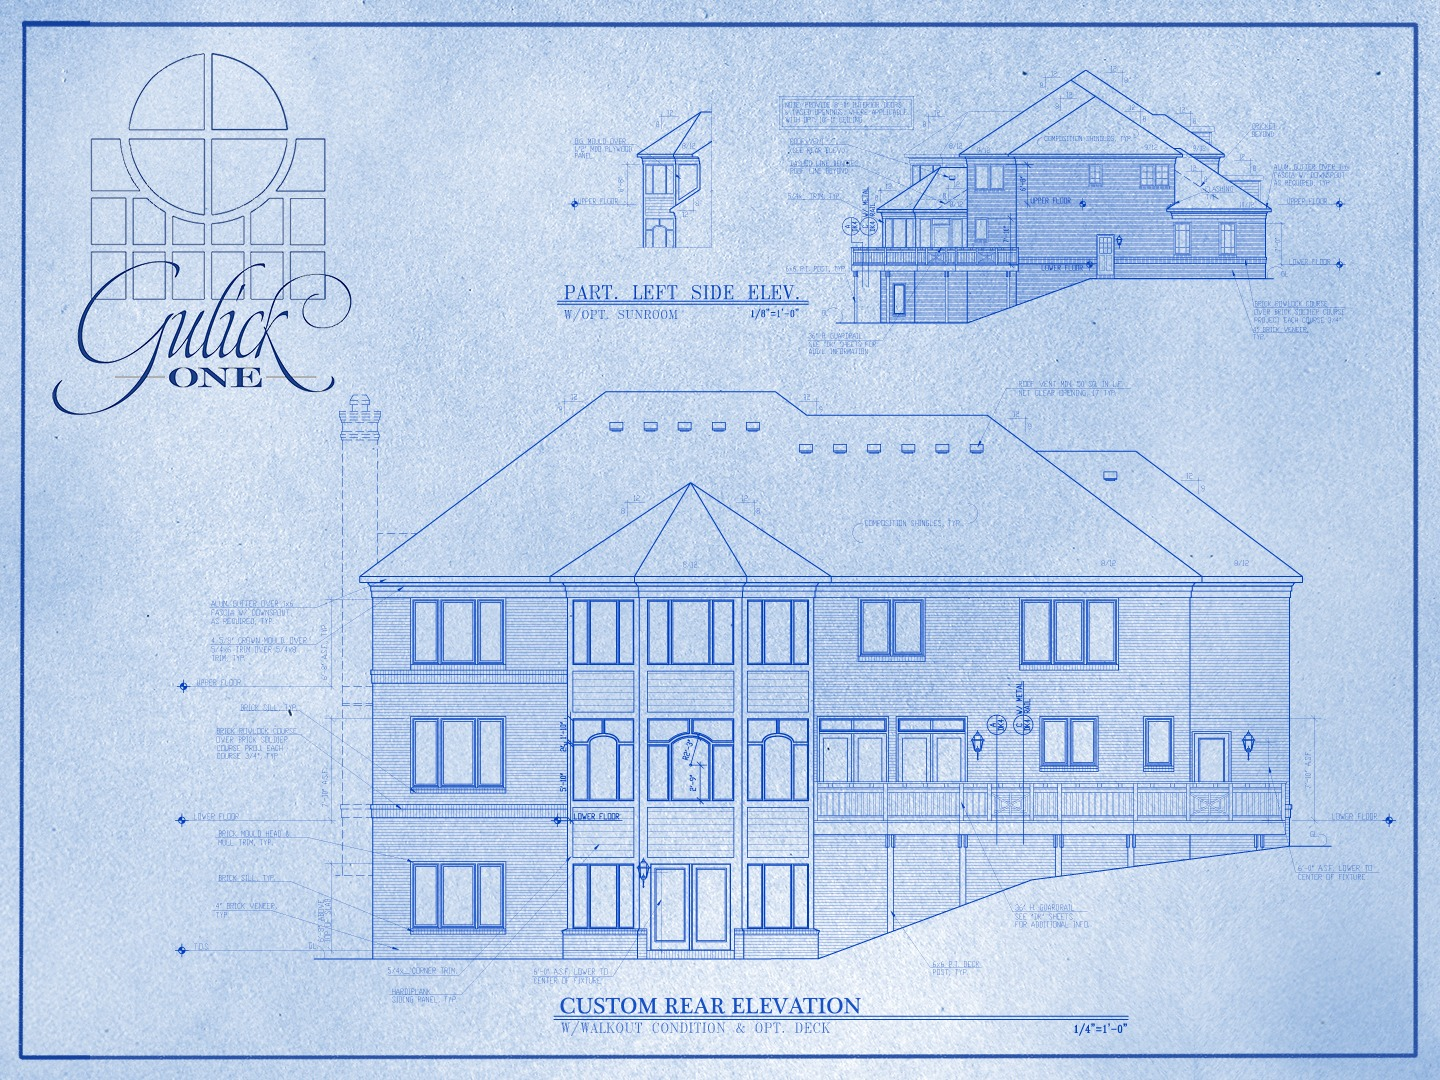 A marketing blueprint for Gulick | One.